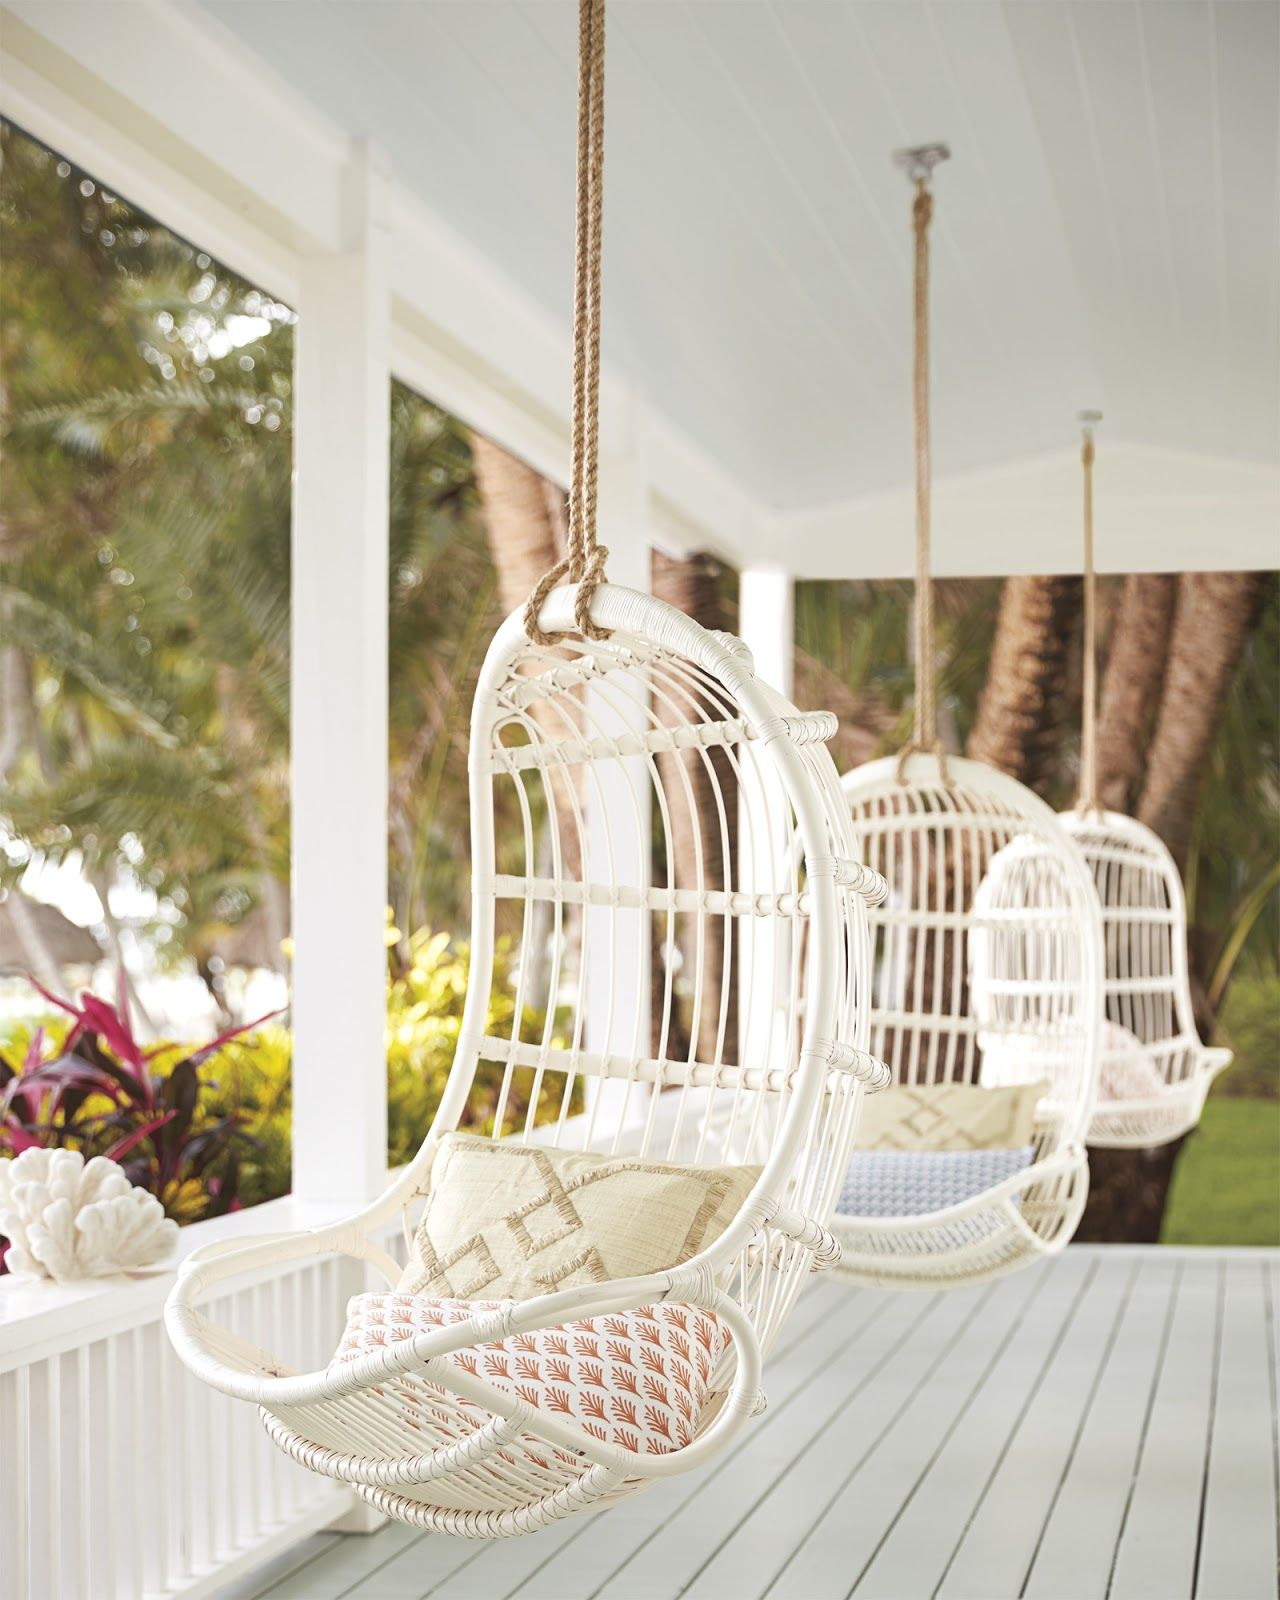 Swinging Chair Outdoor Coastal Style Just A Swangin Swinging Chair Outdoor Chairs